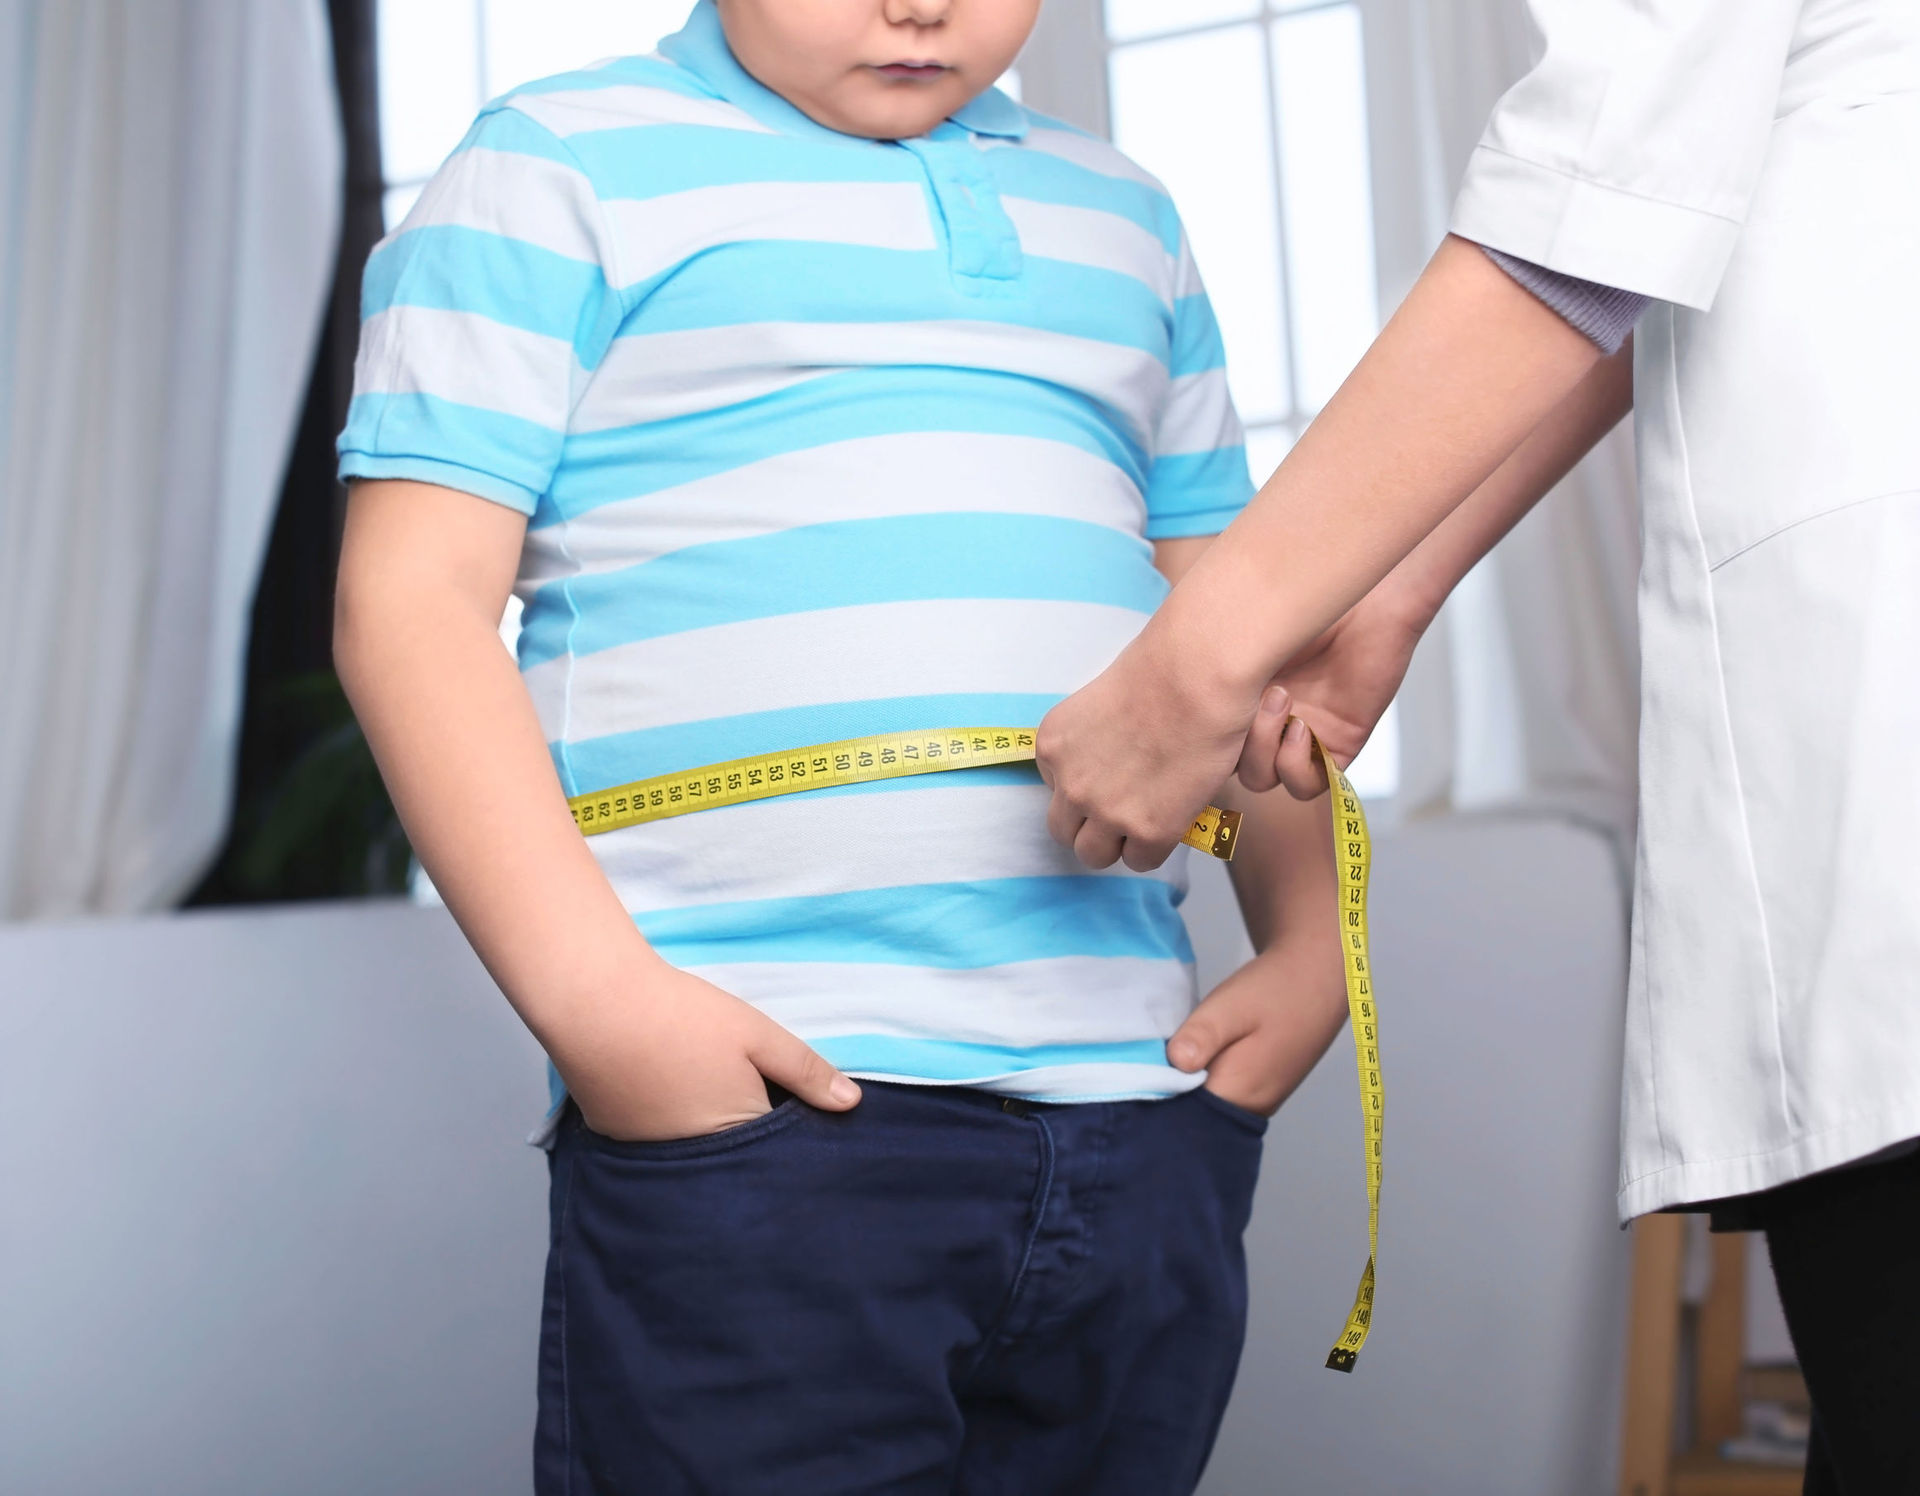 Experts divided on dieting app Kurbo aimed at obese children